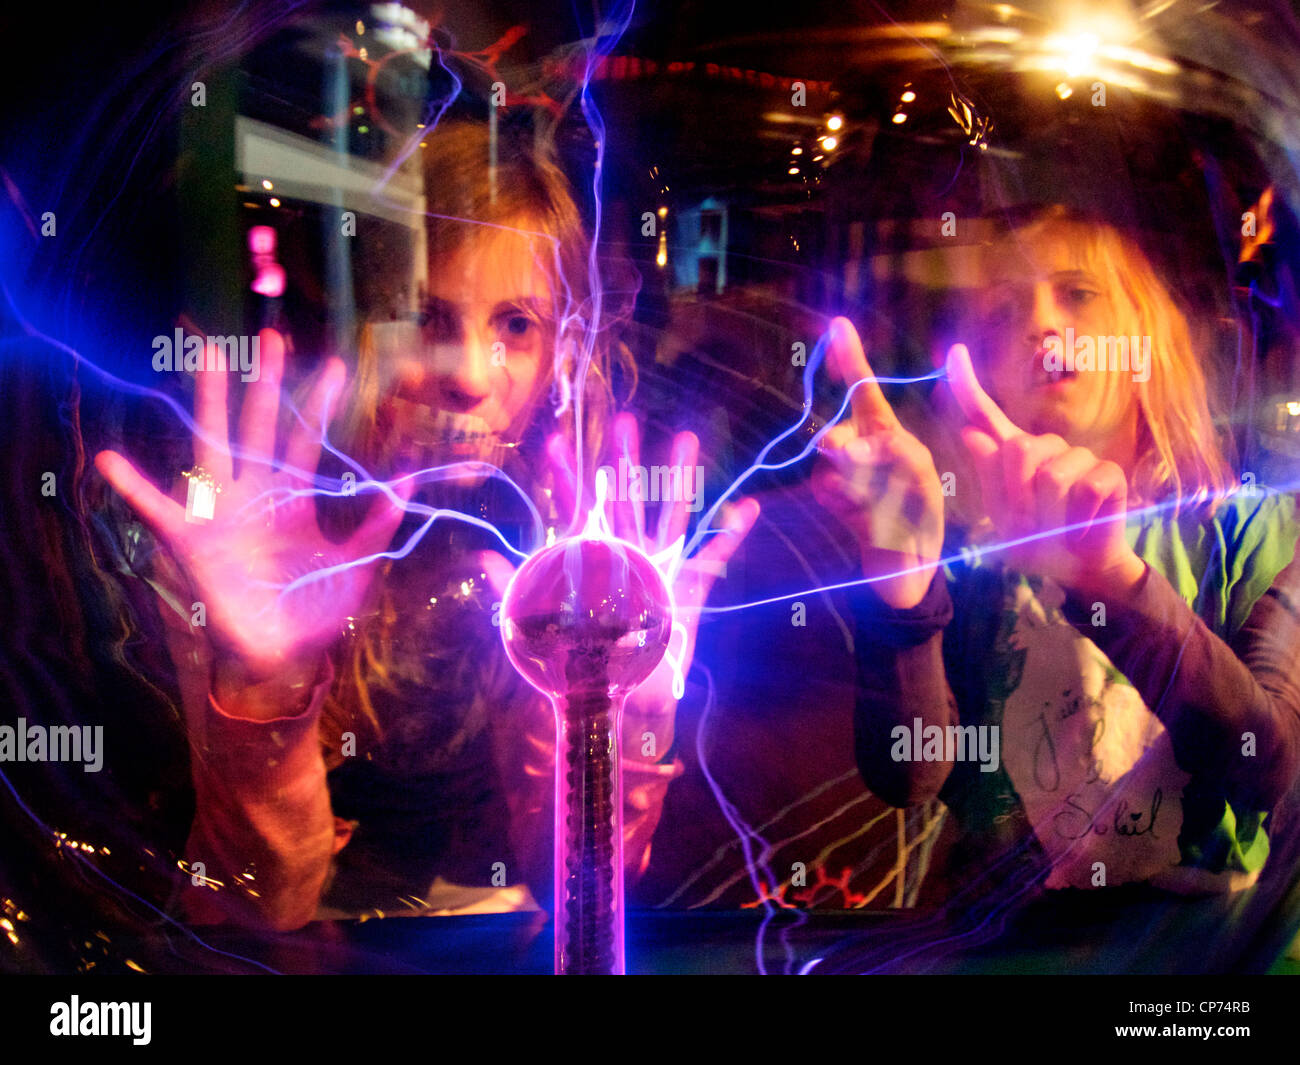 Girls 11 and 7 years old fascinated by tesla plasma ball, Tegelen, the Netherlands - Stock Image